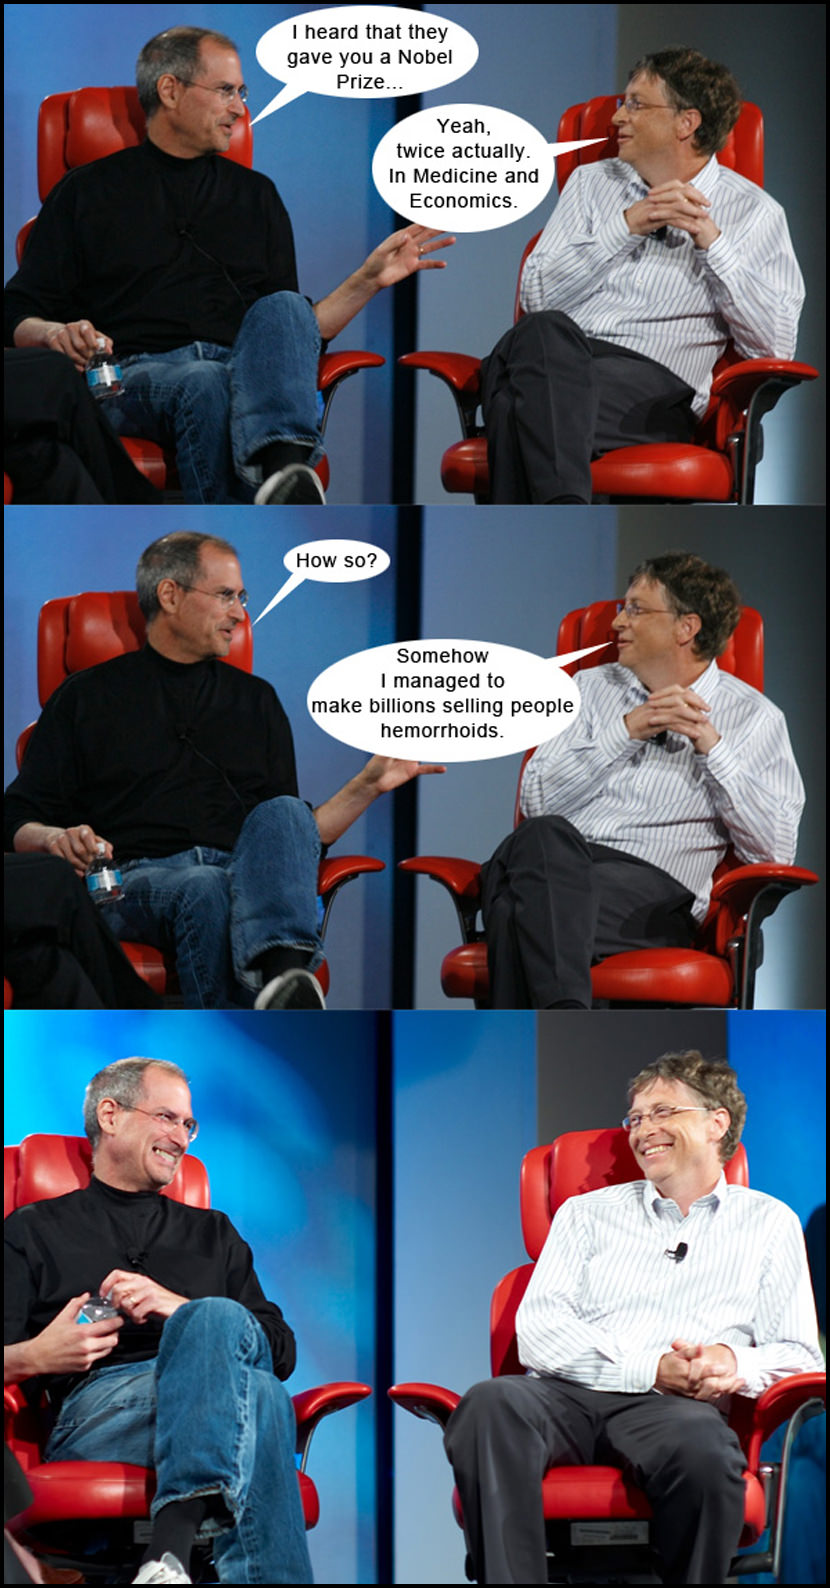 For those that doesn't get this joke, for your information, Bill Gates is not the biggest share holder of Microsoft, he has been selling down his share in Microsoft for many years and have invested his wealth in medical and services industries such as Four Season hotels.